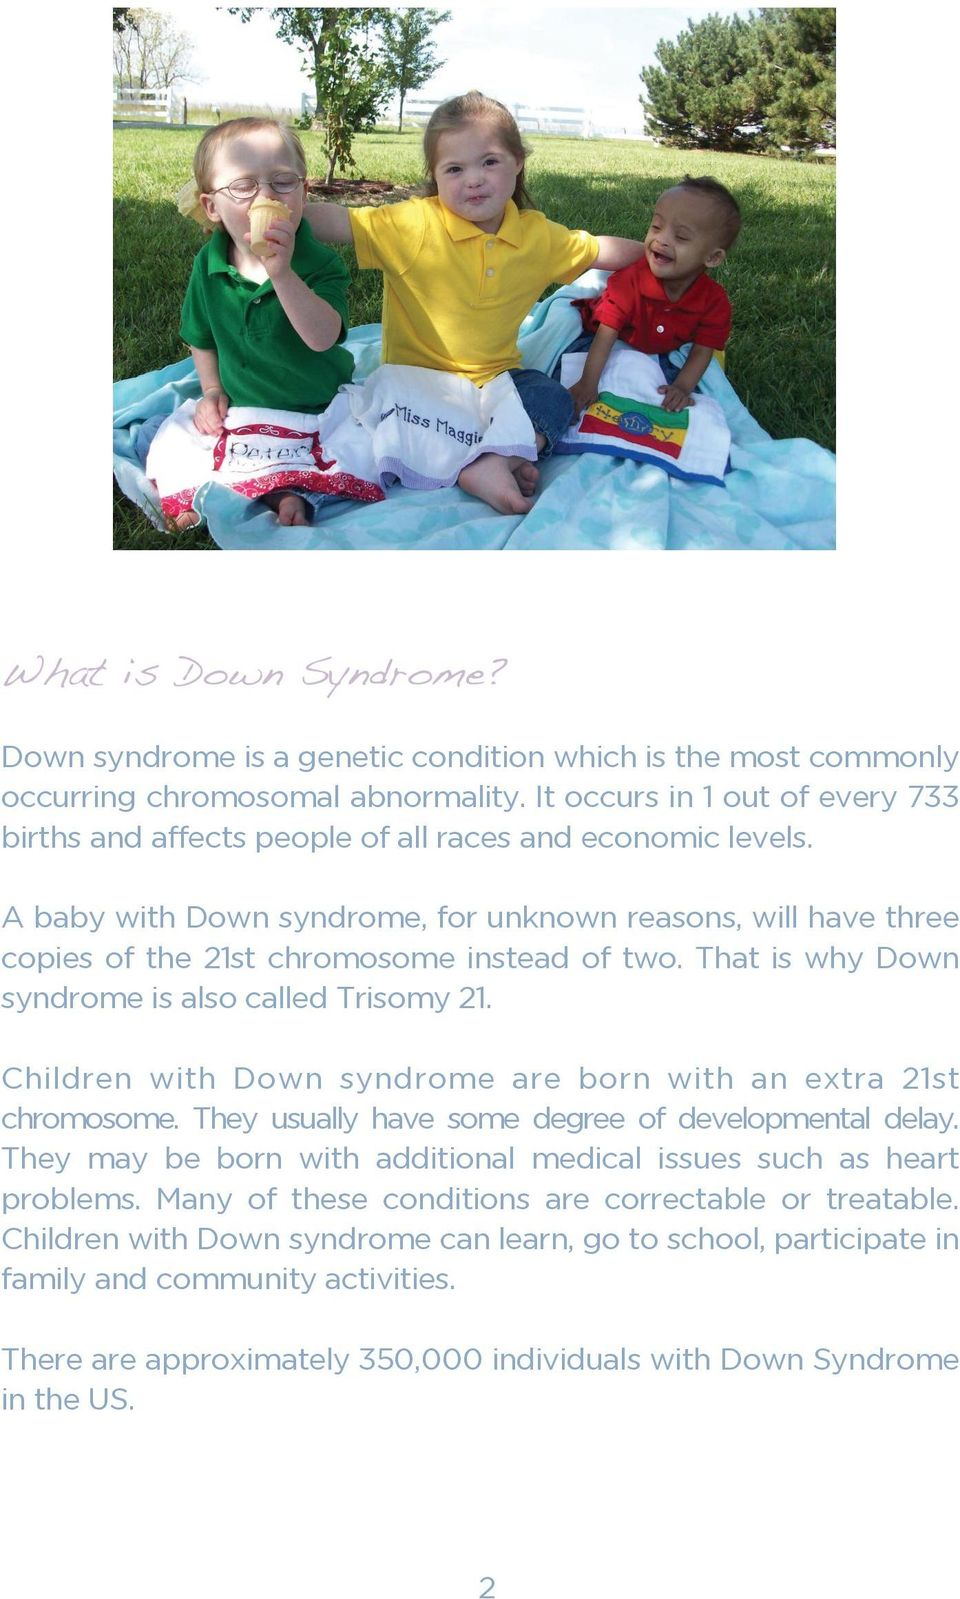 A baby with Down syndrome, for unknown reasons, will have three copies of the 21st chromosome instead of two. That is why Down syndrome is also called Trisomy 21.